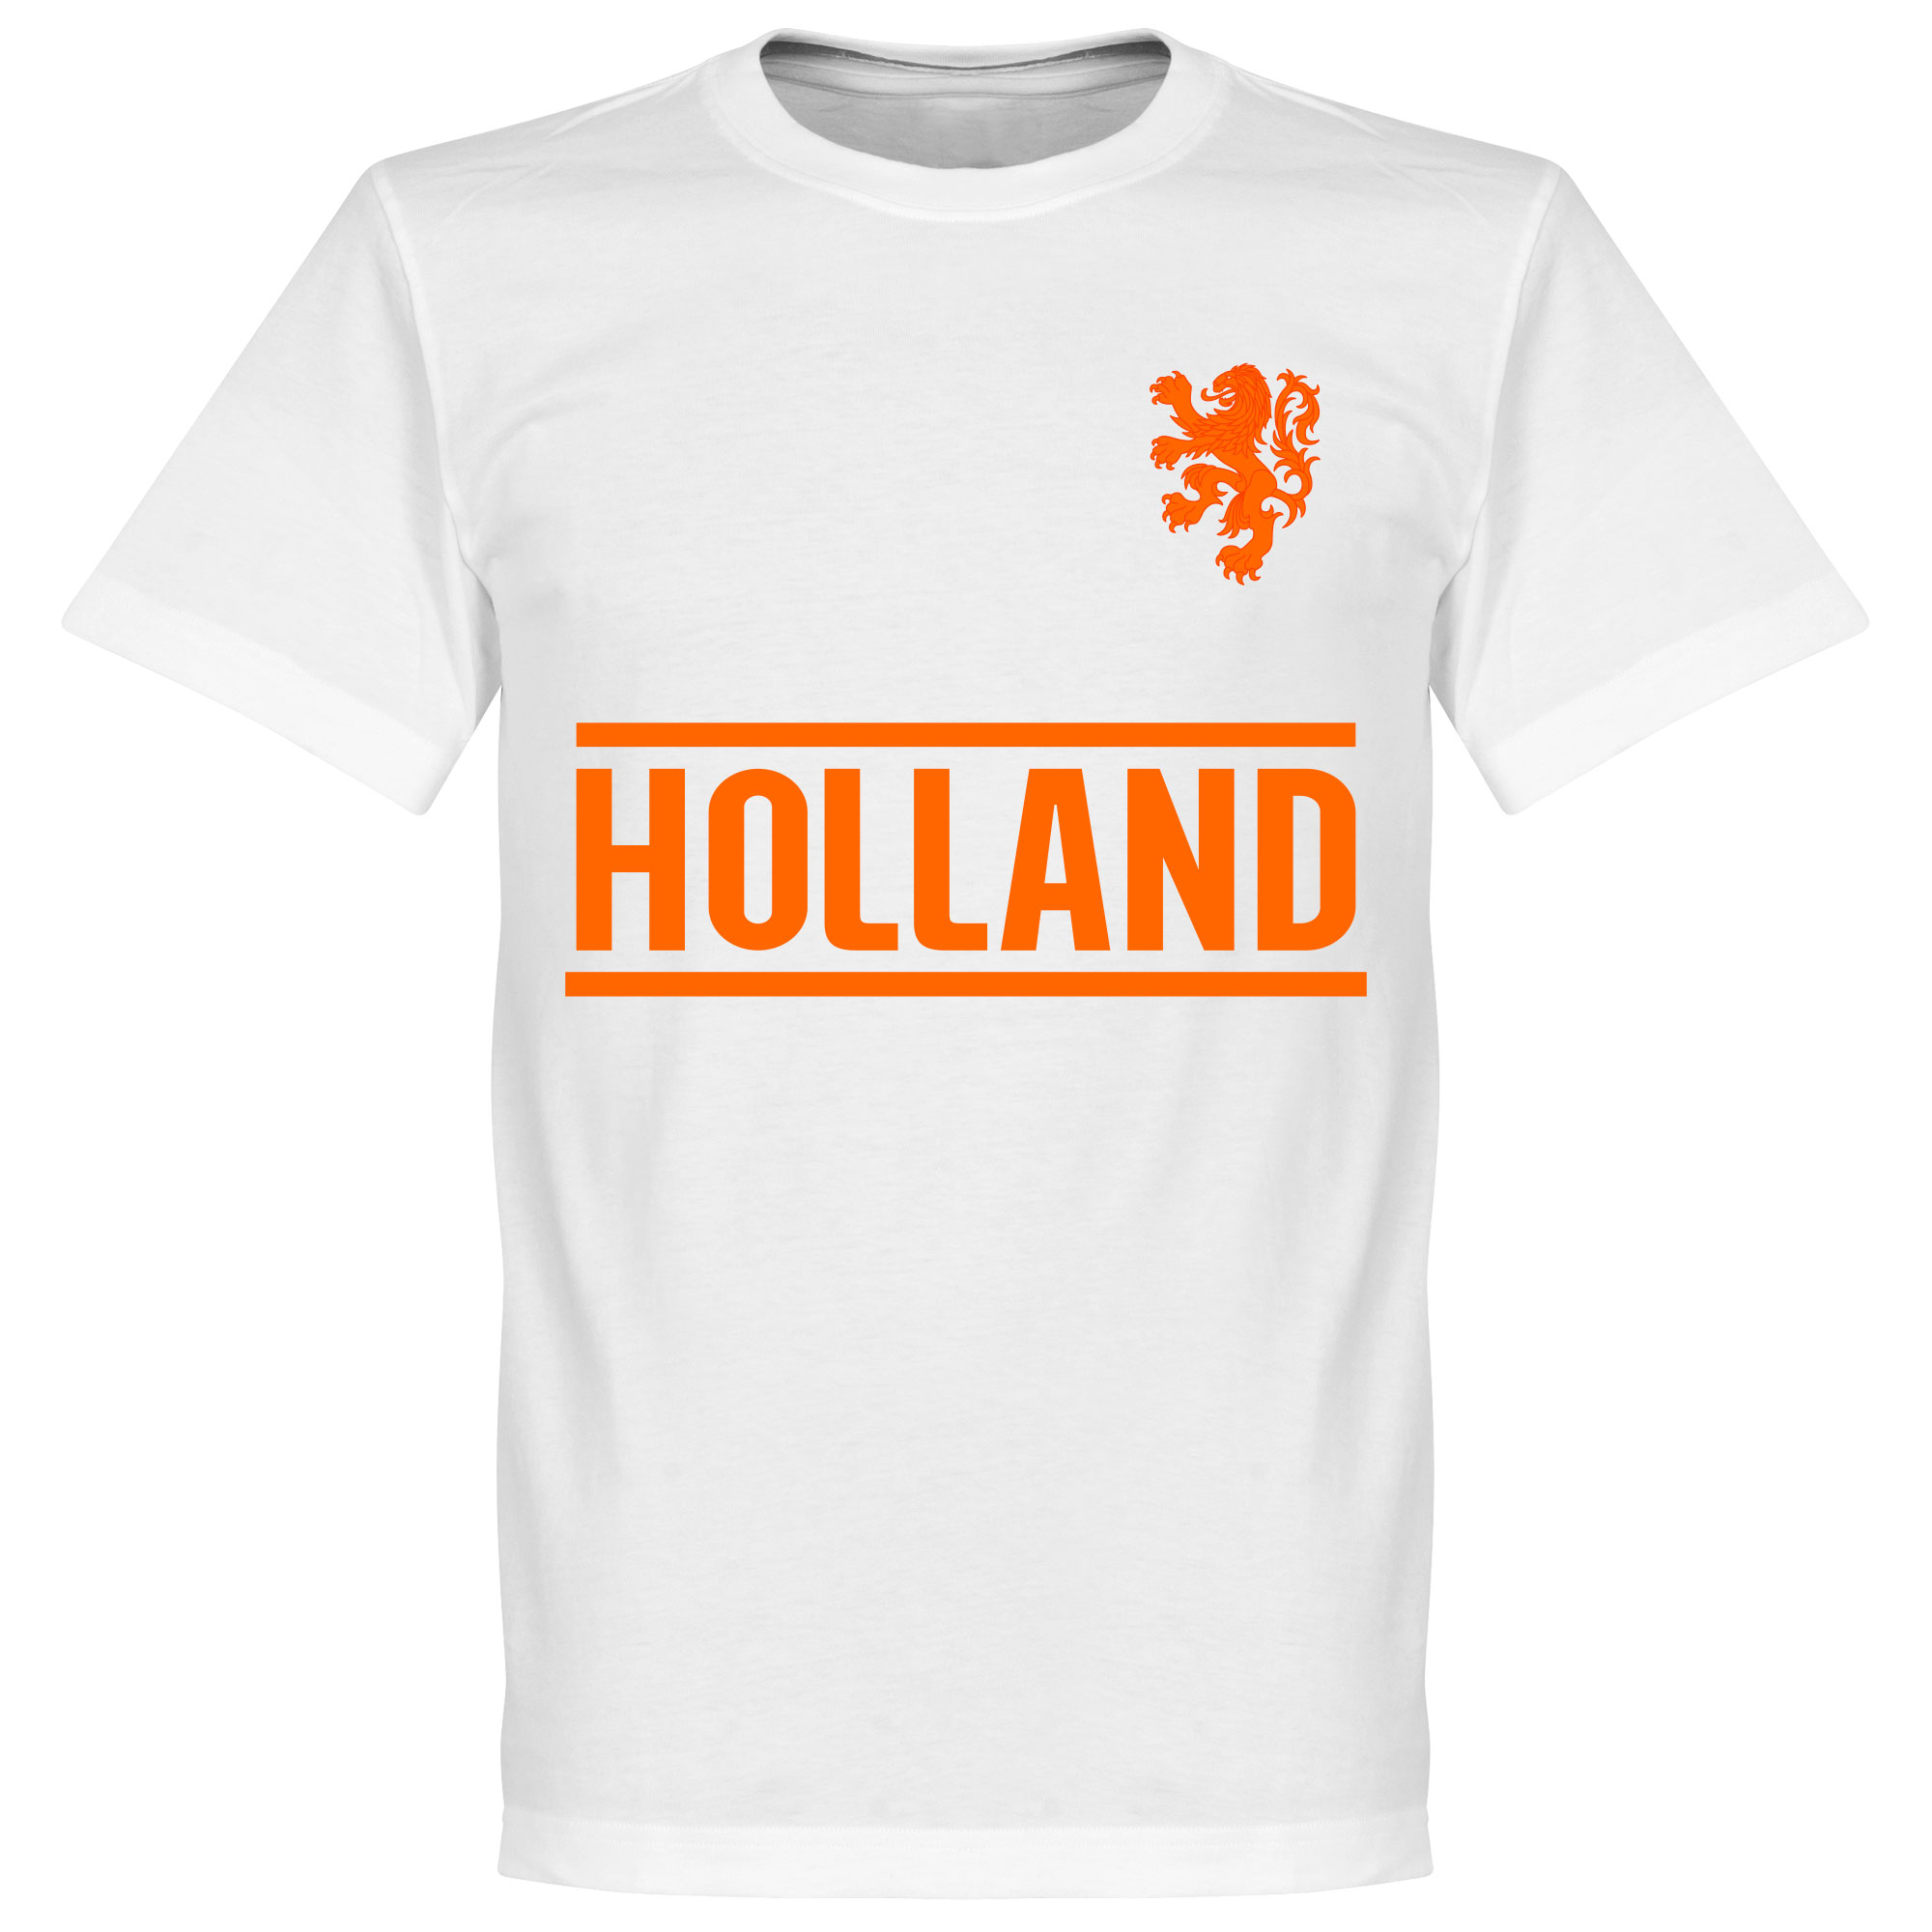 Holland Team Tee - White - XXXL